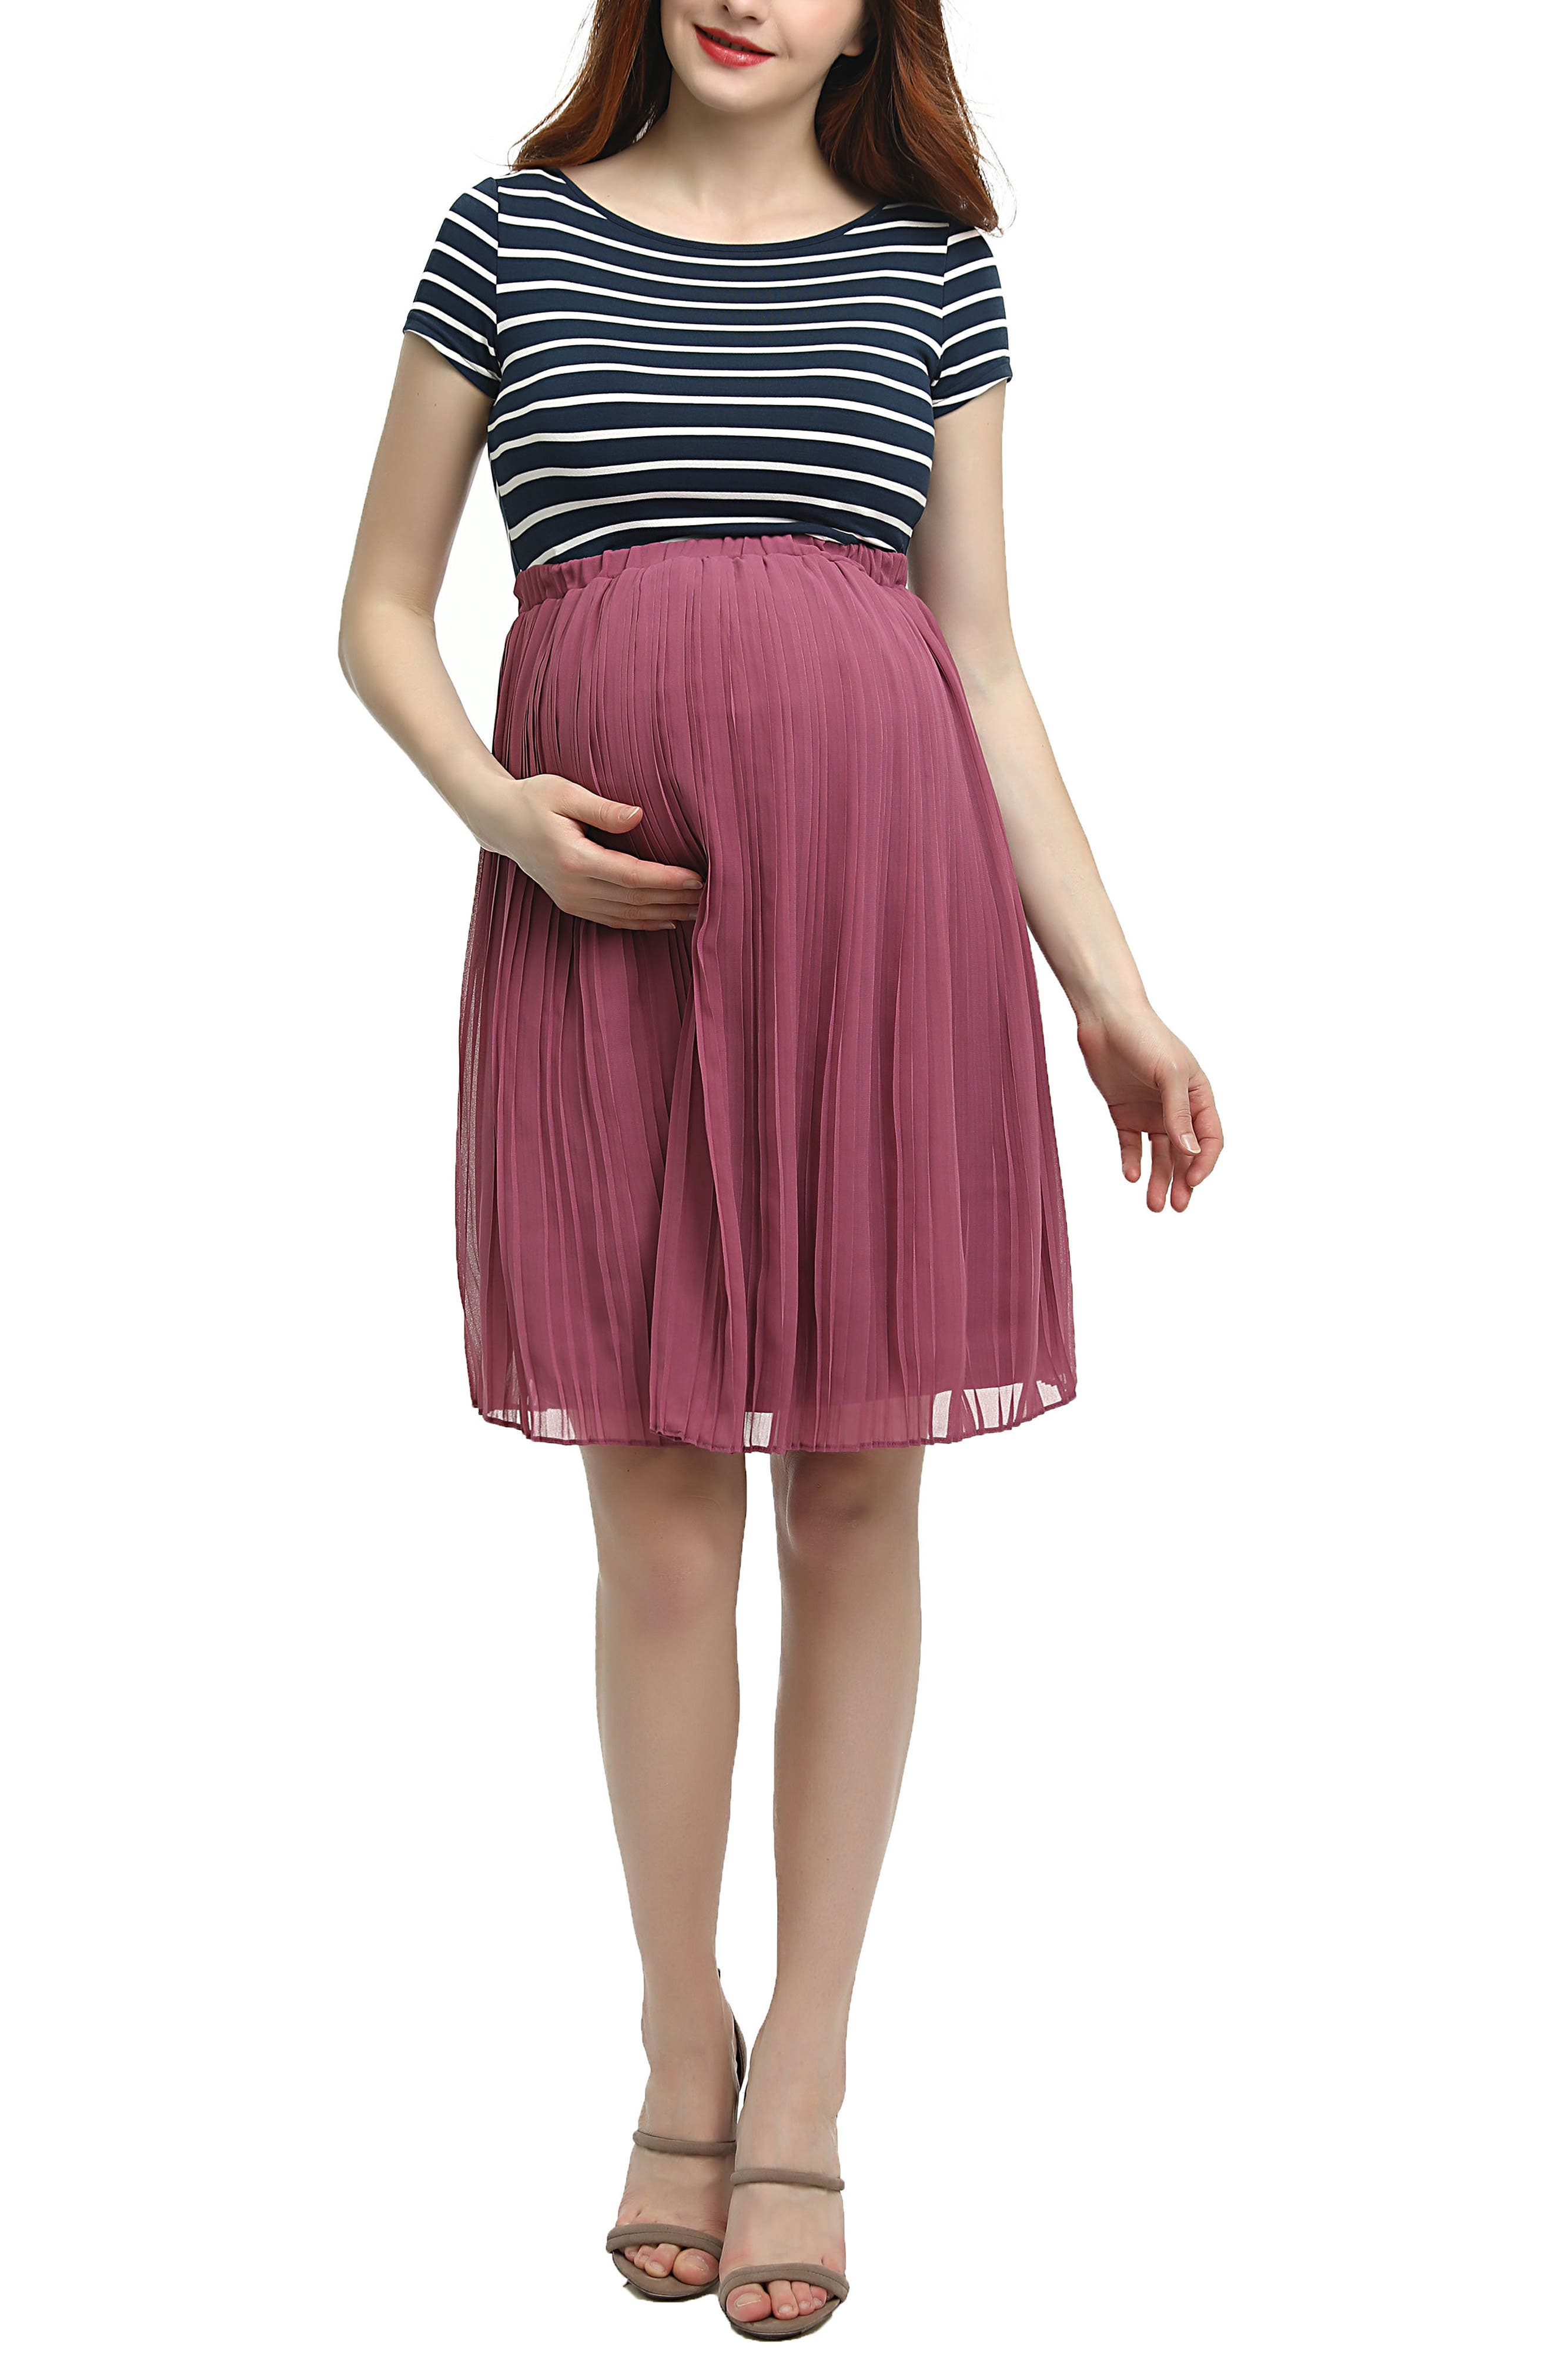 Everly Stripe Pleated Maternity Dress,                             Main thumbnail 1, color,                             MULTICOLORED